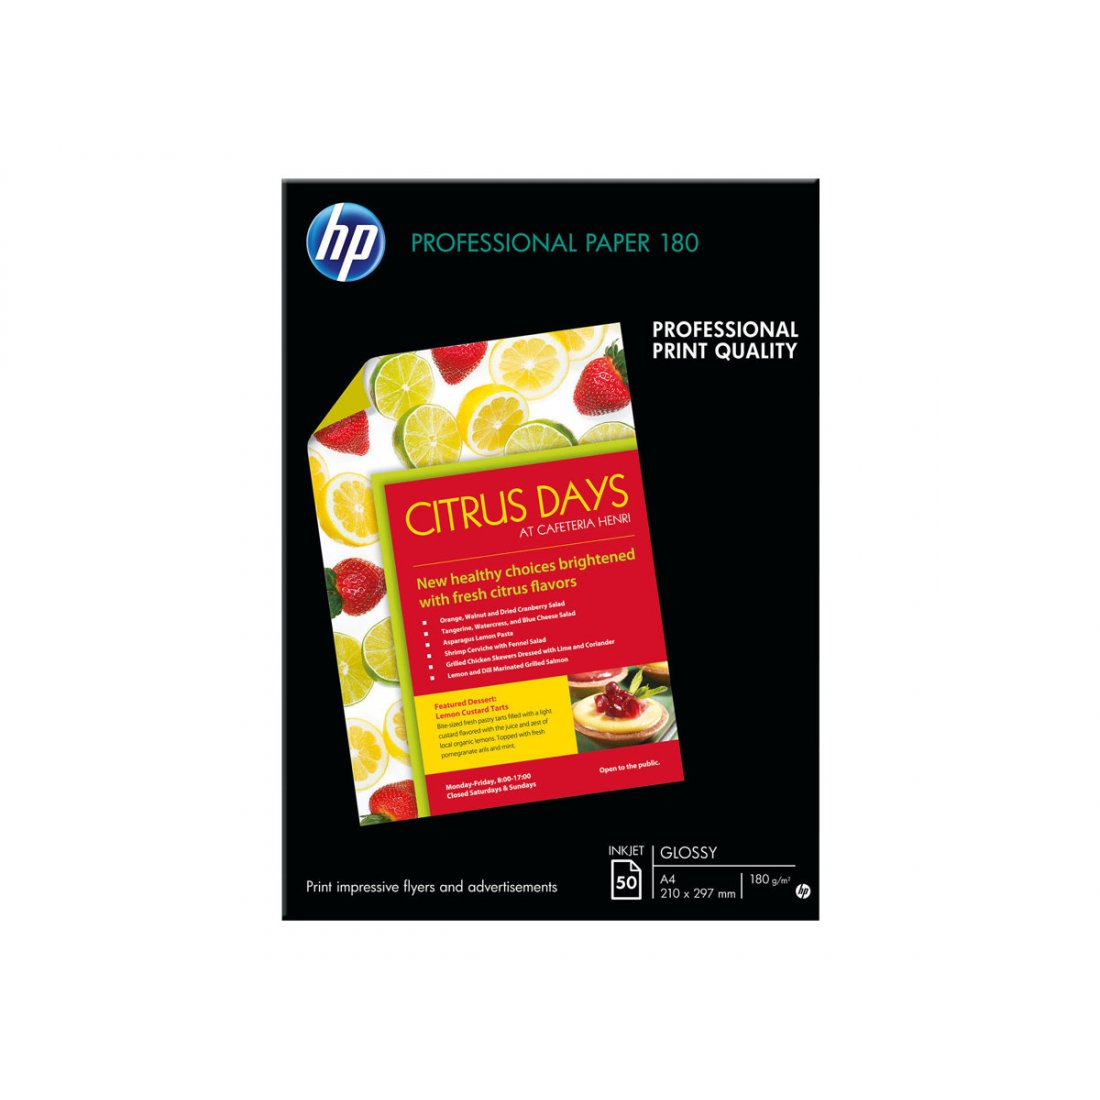 HP 180 Superior glossy paper inktjet 180g/m2 A4 50 sheets 1-